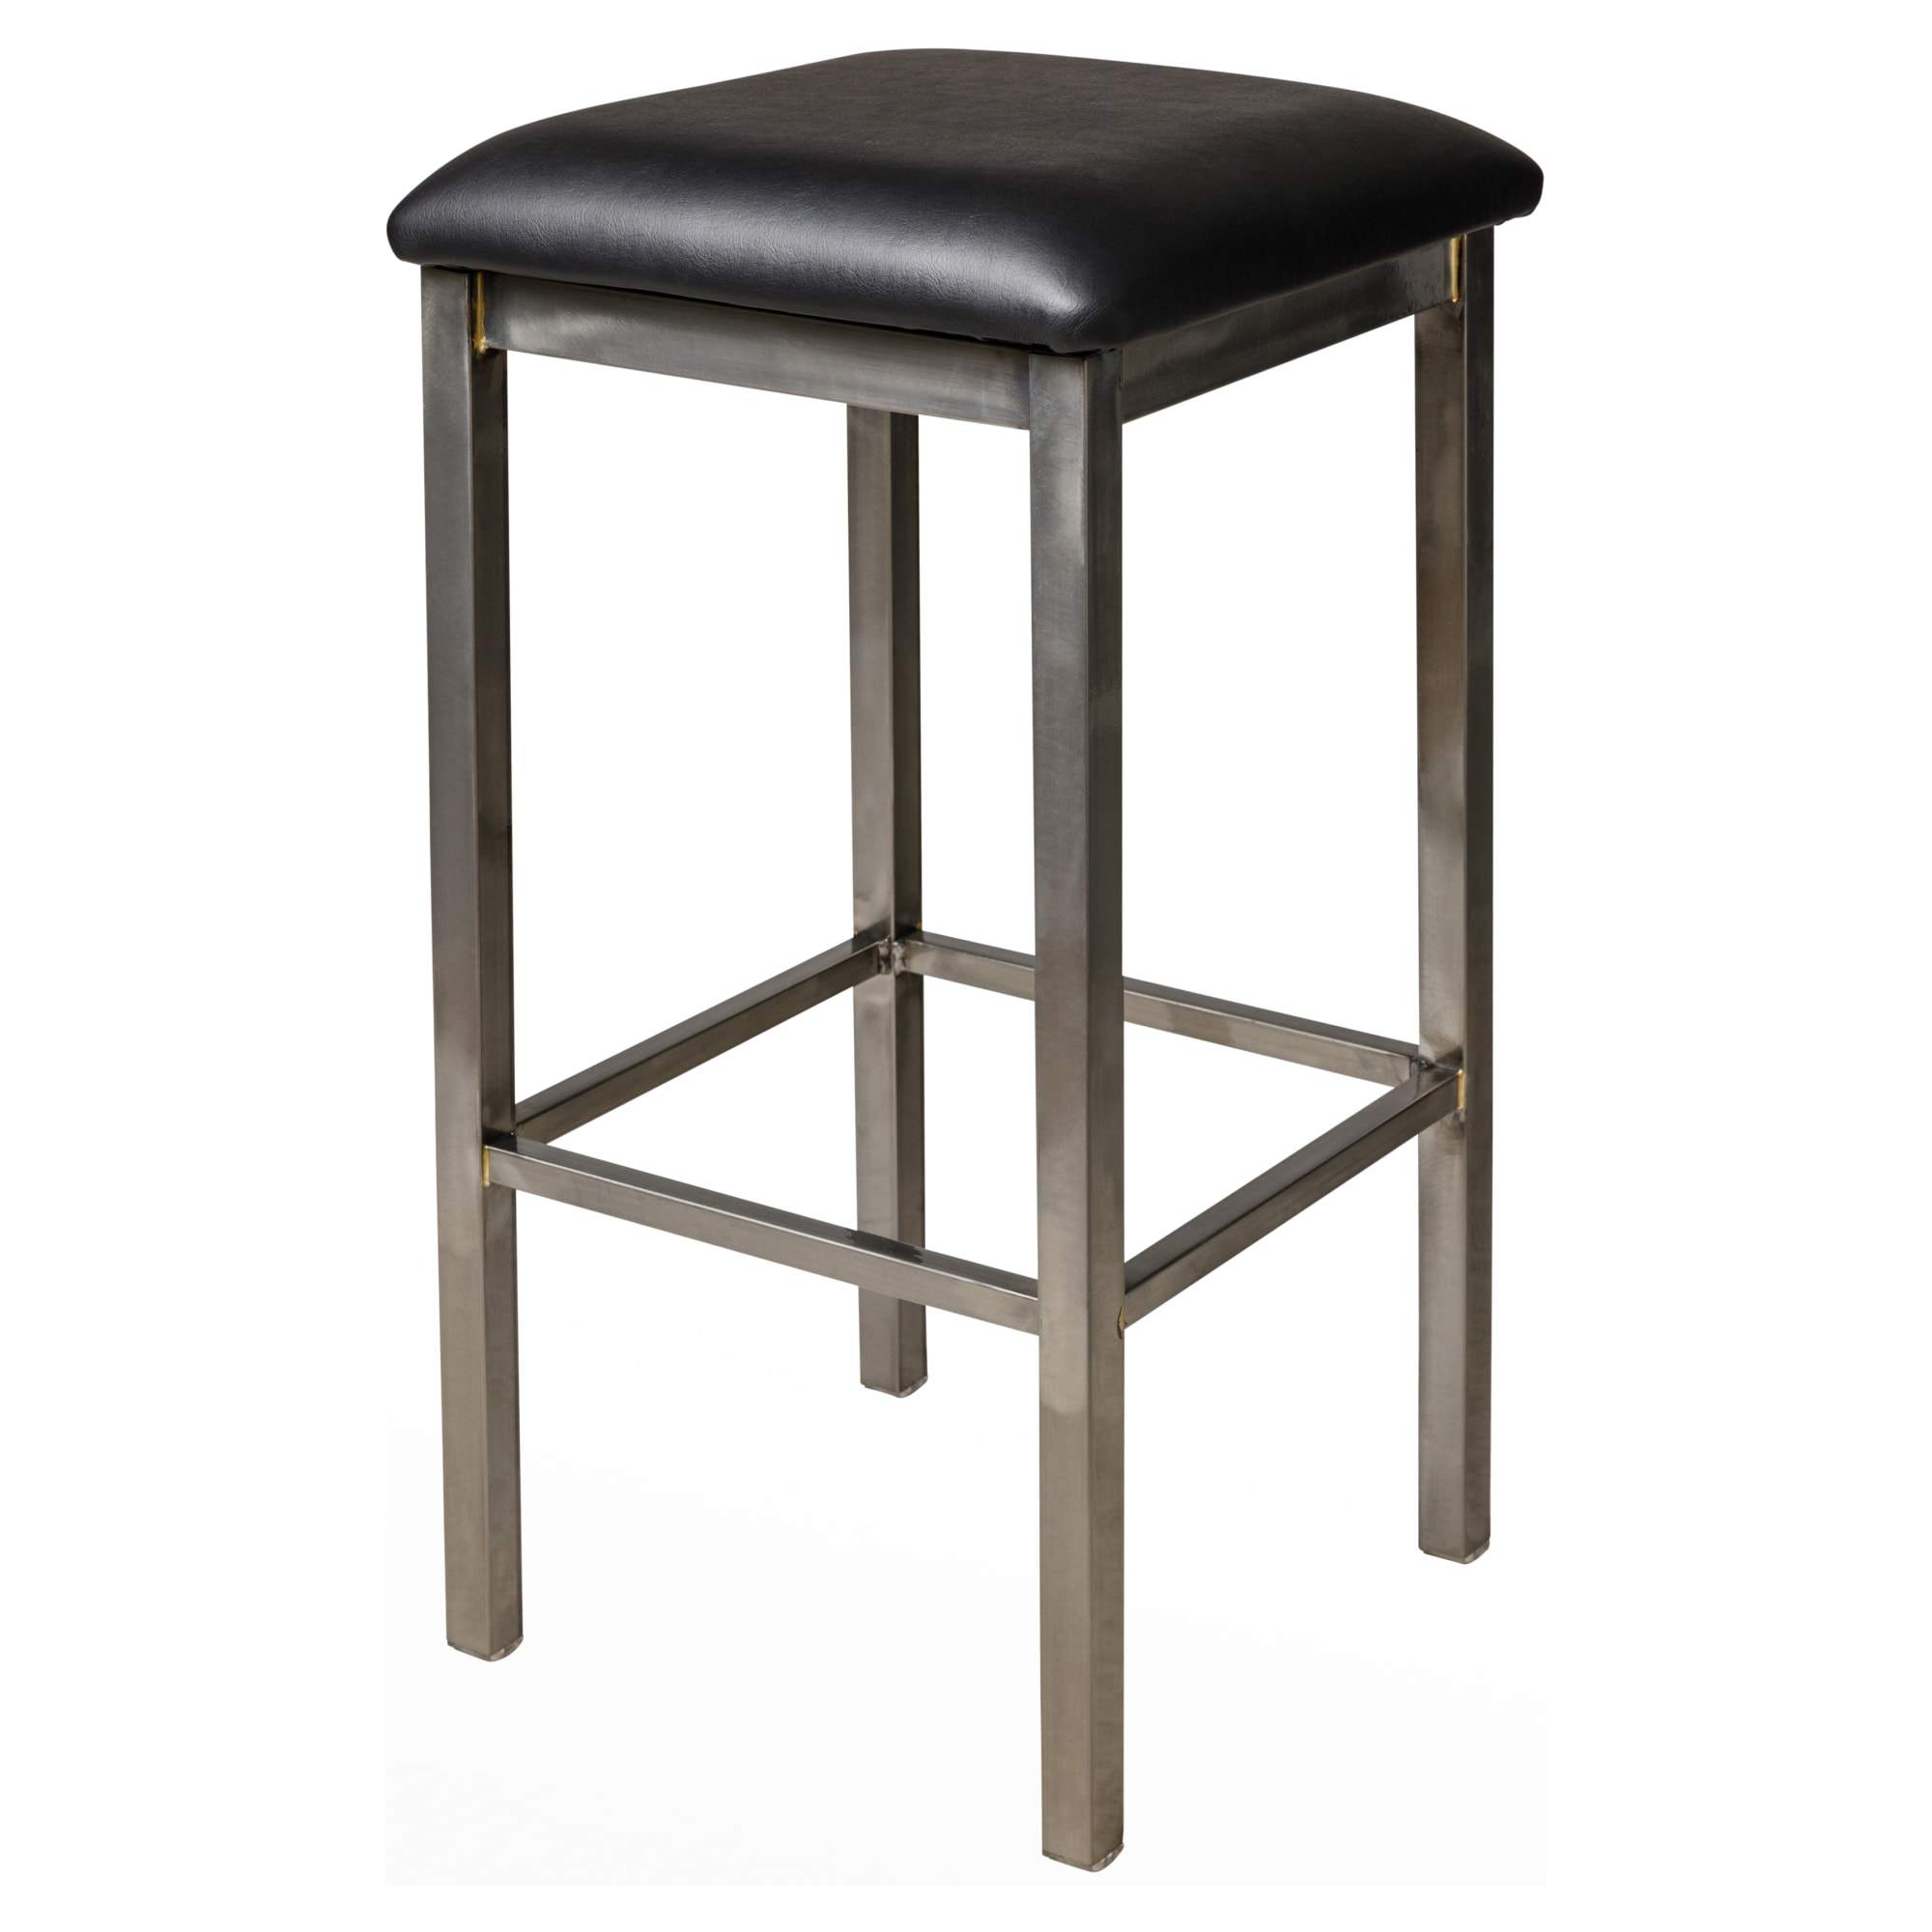 Kollet Backless Bar Stool in Clear Coat Finish